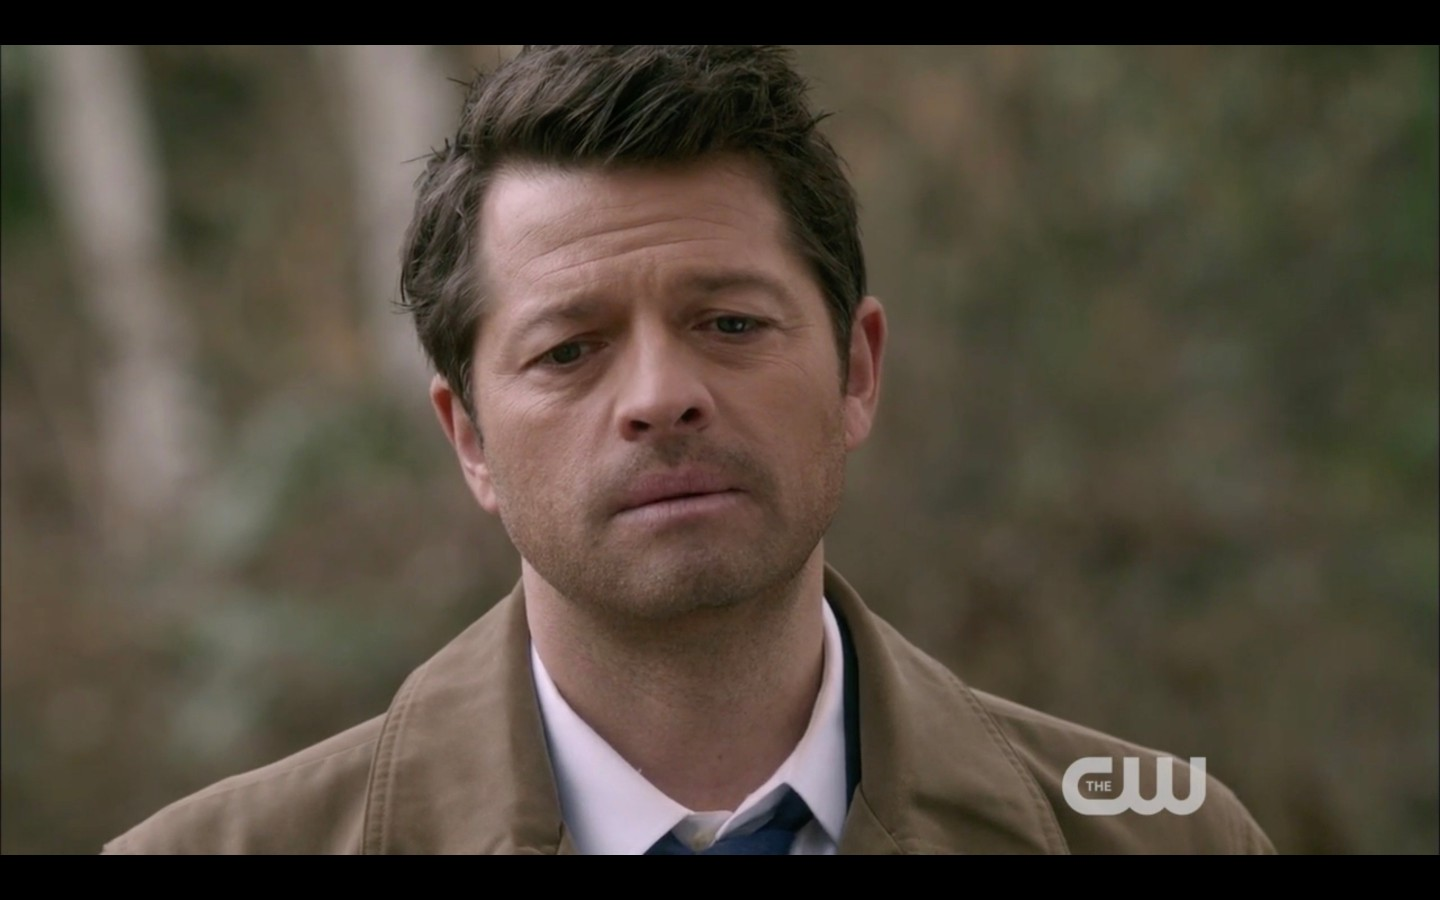 supernatural naomi tells castiel shes closing gates of heaven funeralia